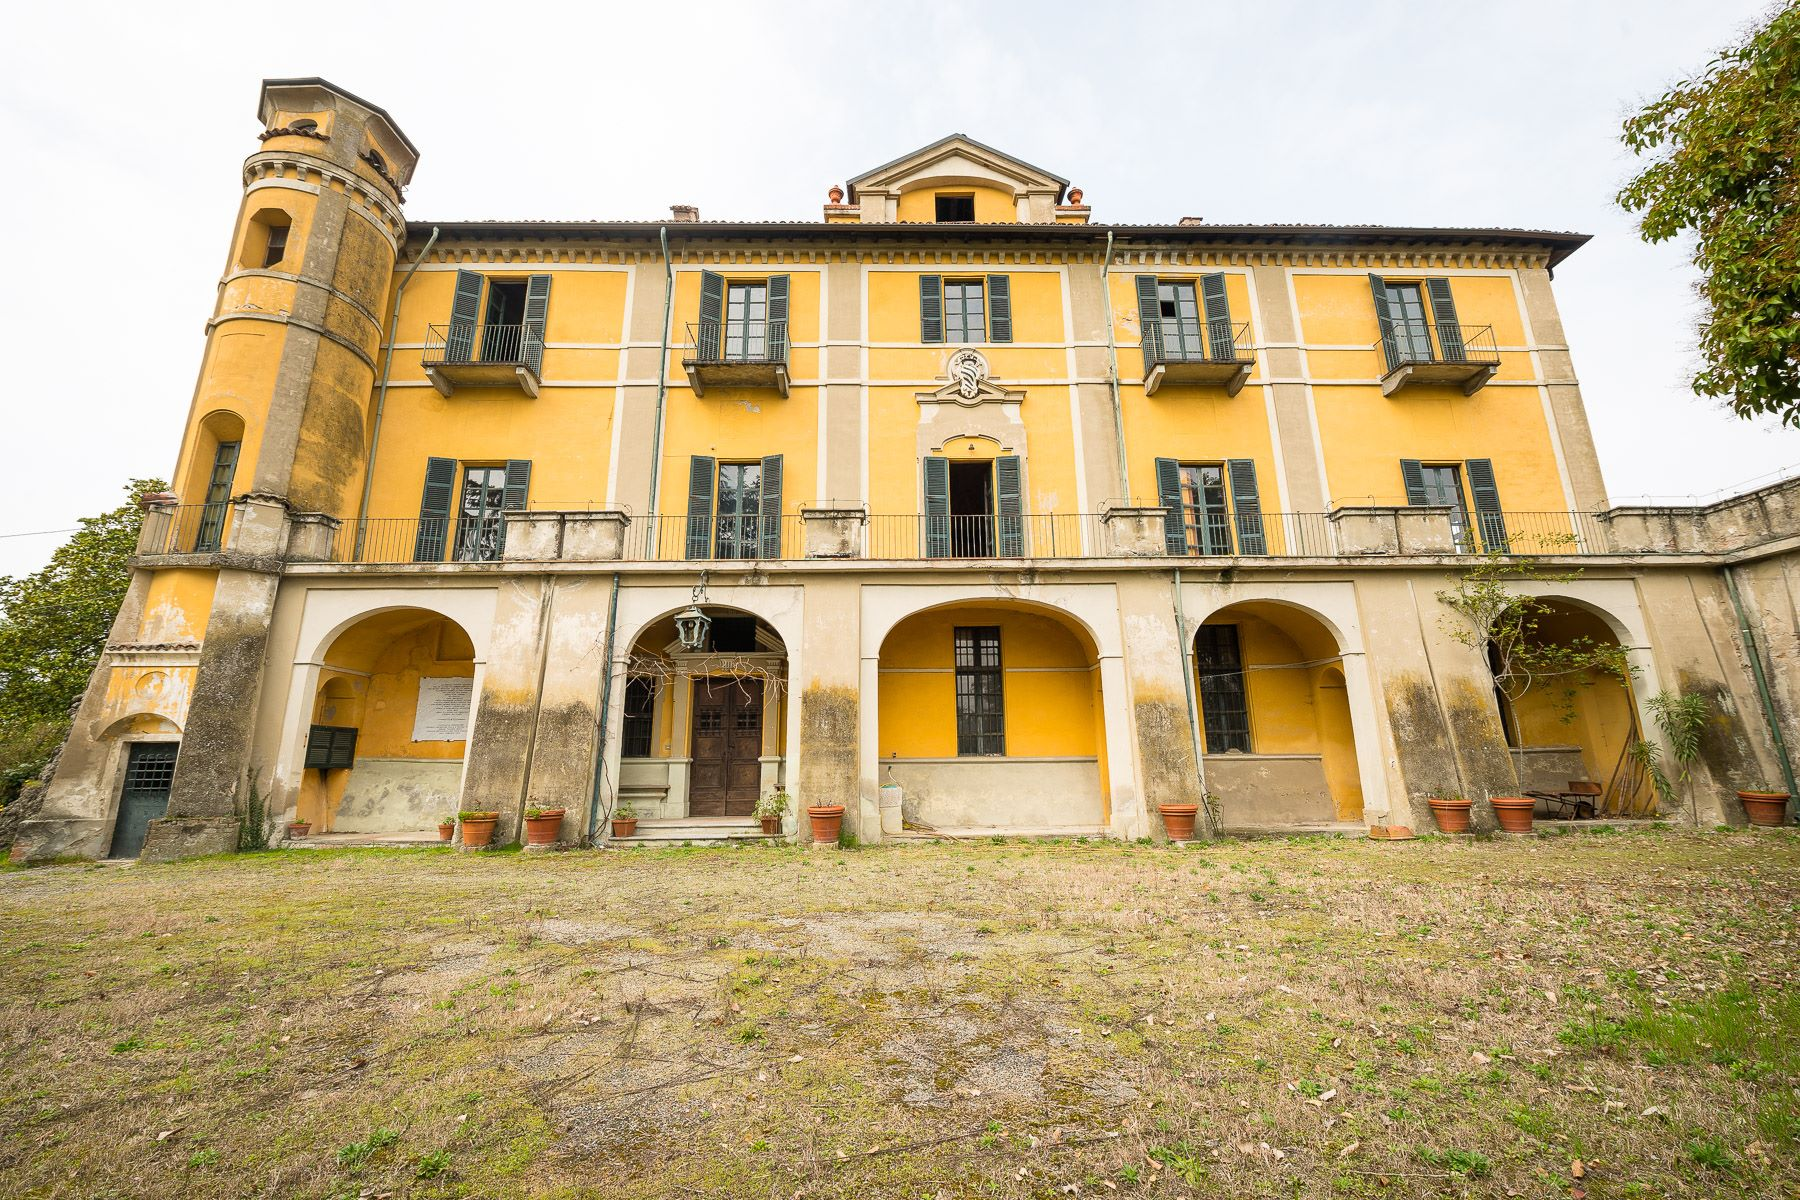 Single Family Home for Sale at Piedmont's baroque Villa in Moncestino Other Alessandria, Alessandria Italy